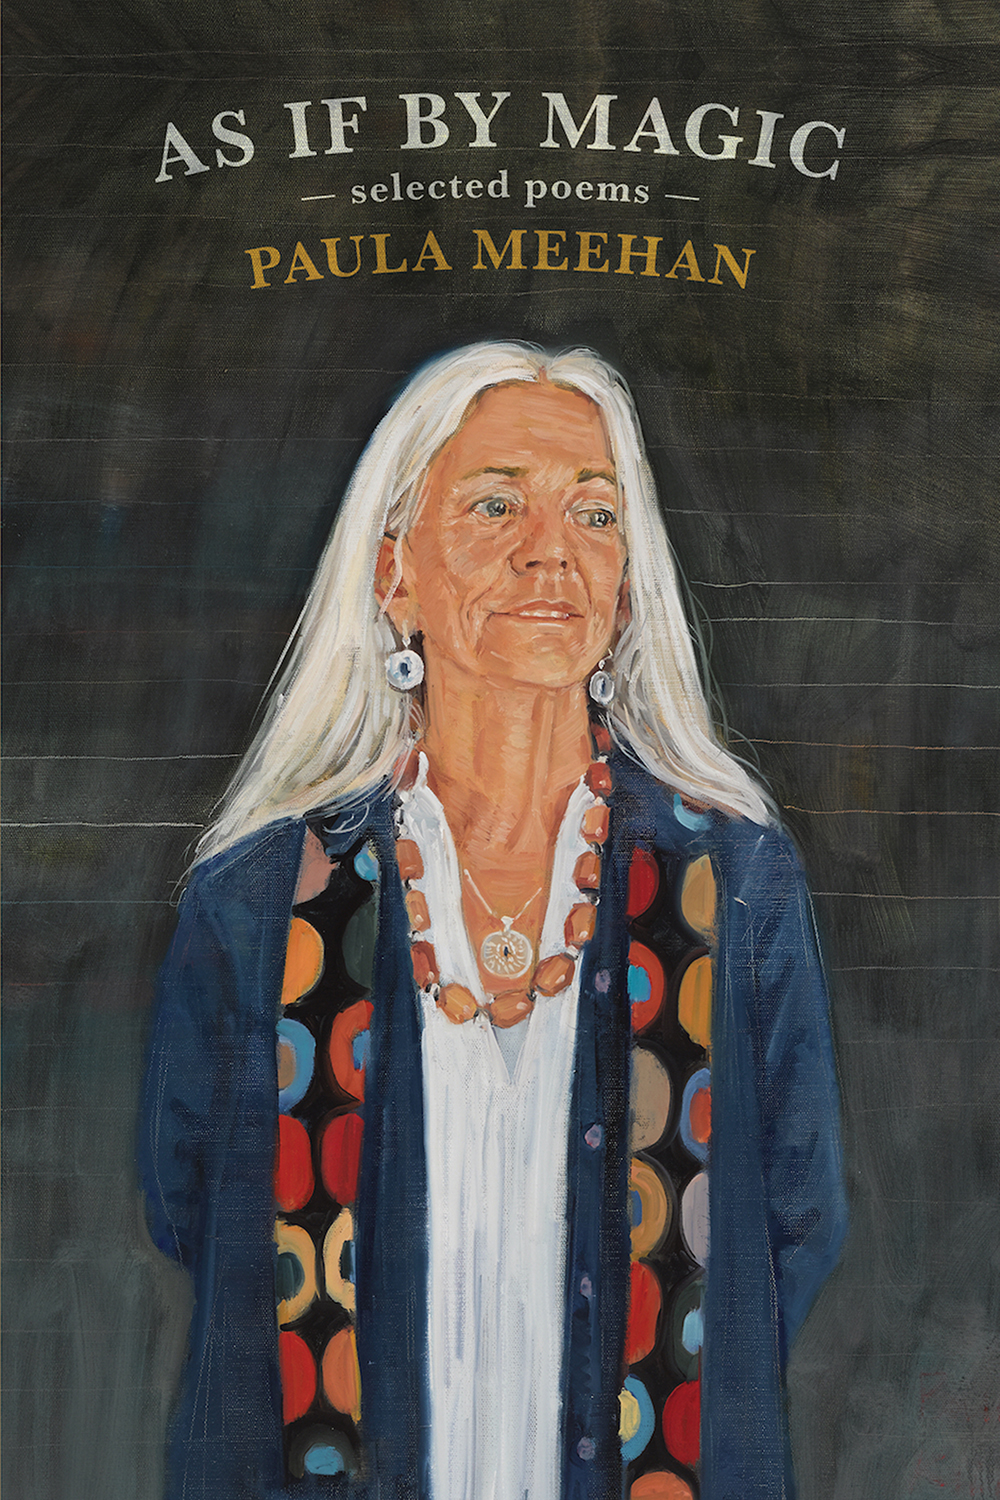 As If By Magic: Selected Poems by Paula Meehan